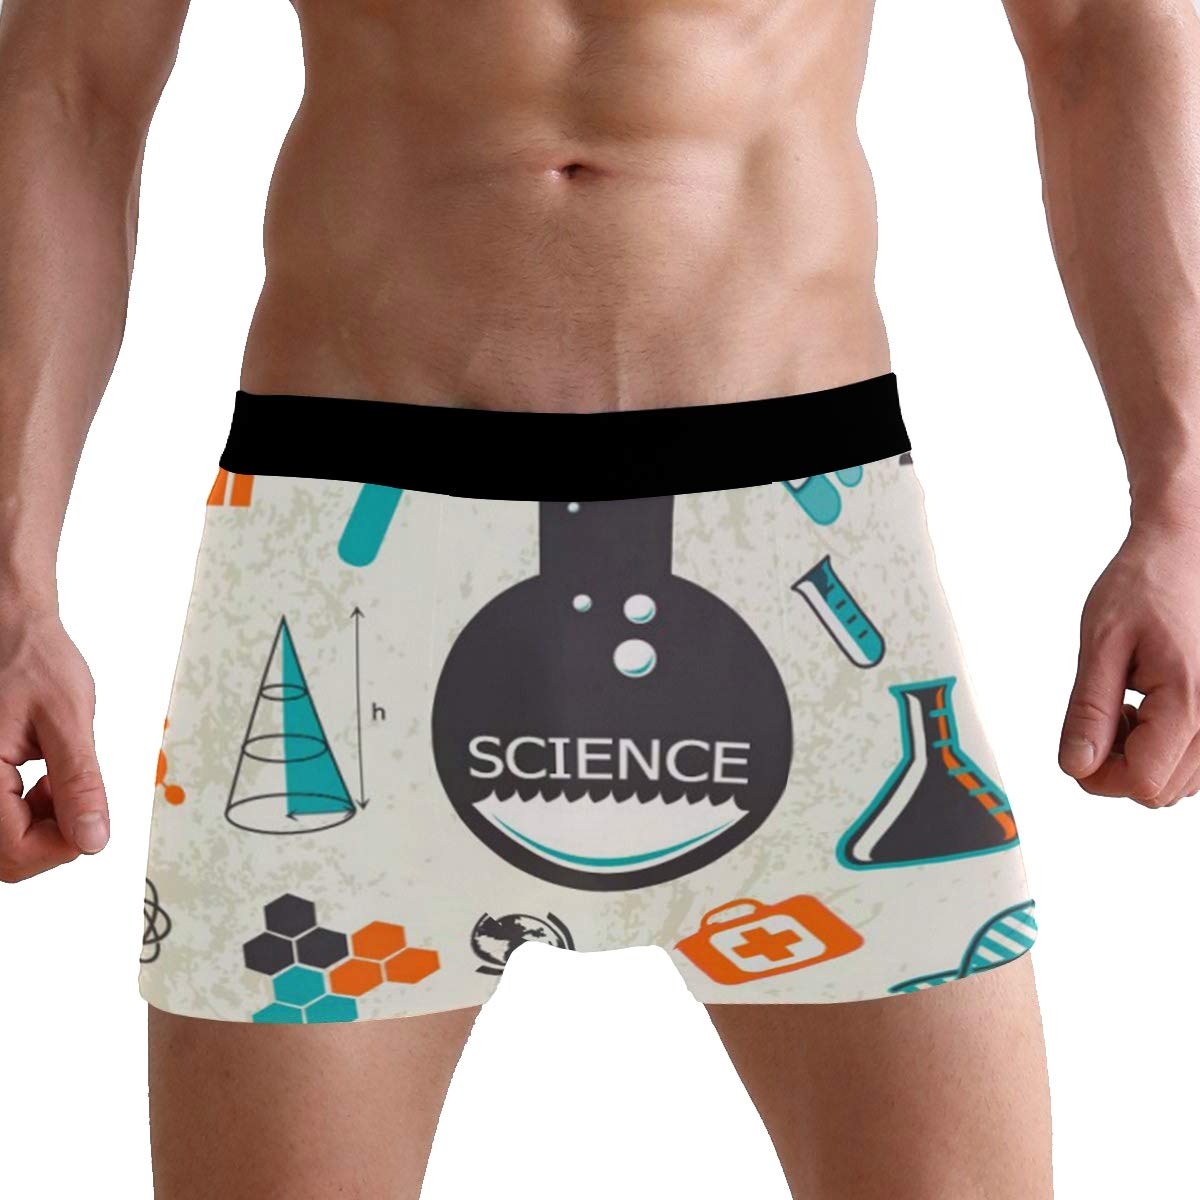 Mens Soft Breathable Science Elements with Test Tubes and Molecules Underwear Boxer Briefs